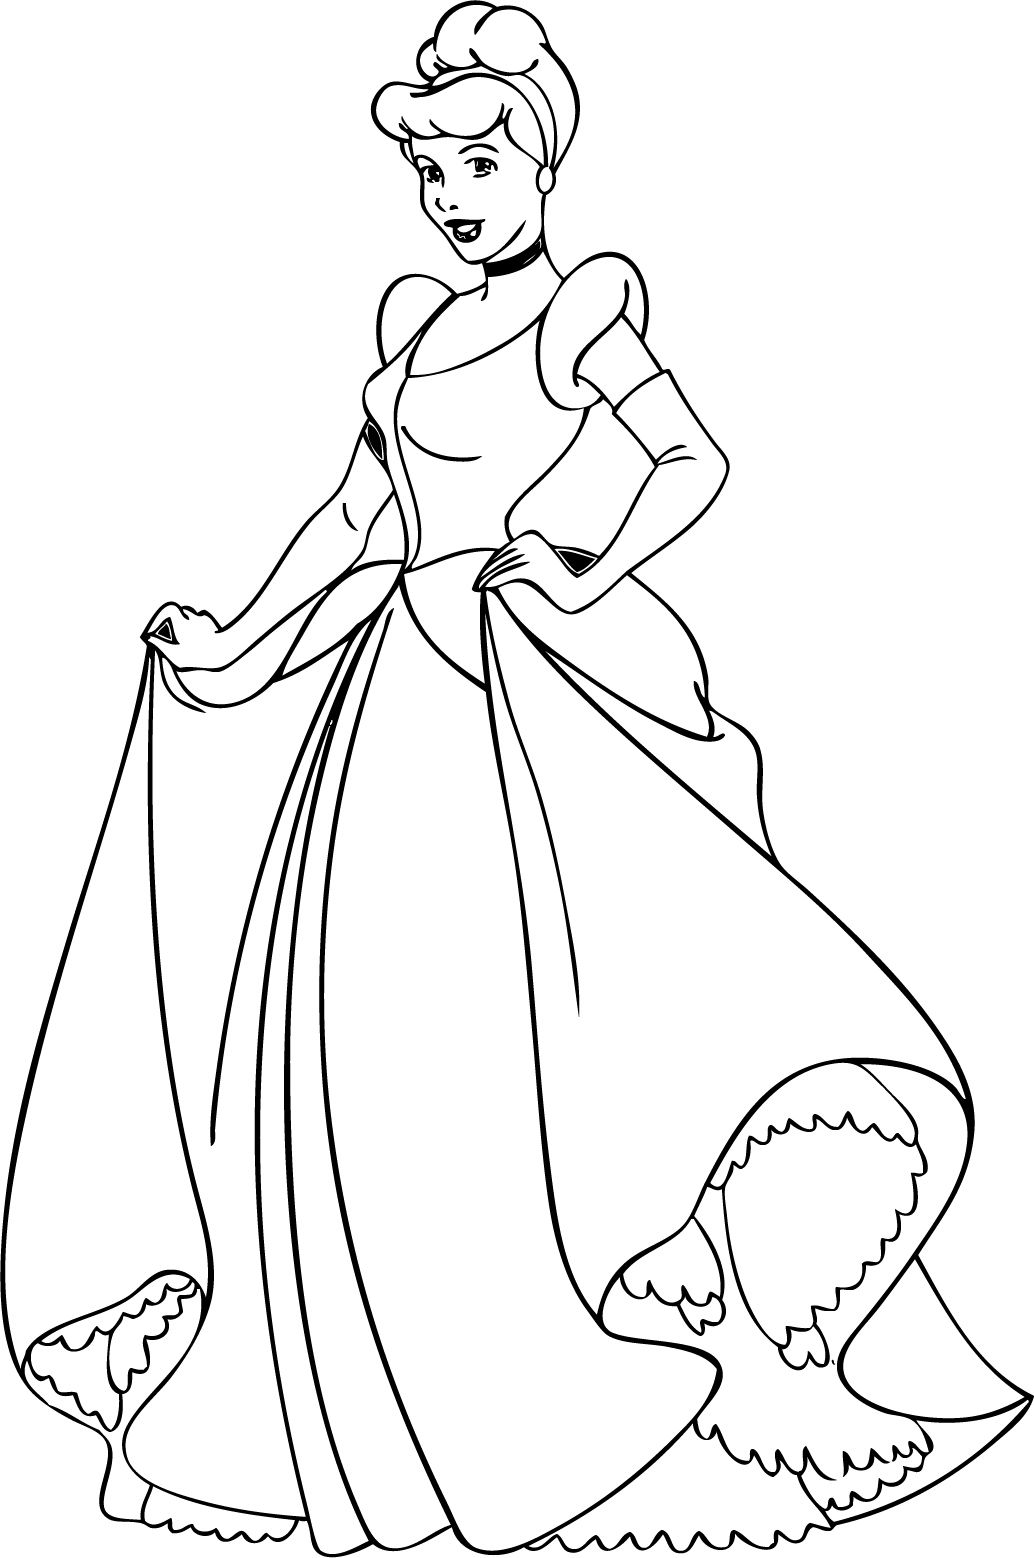 Cinderella Coloring Pages Coloringpagess Cinderella Coloring Pages Disney Princess Coloring Pages Princess Coloring Pages